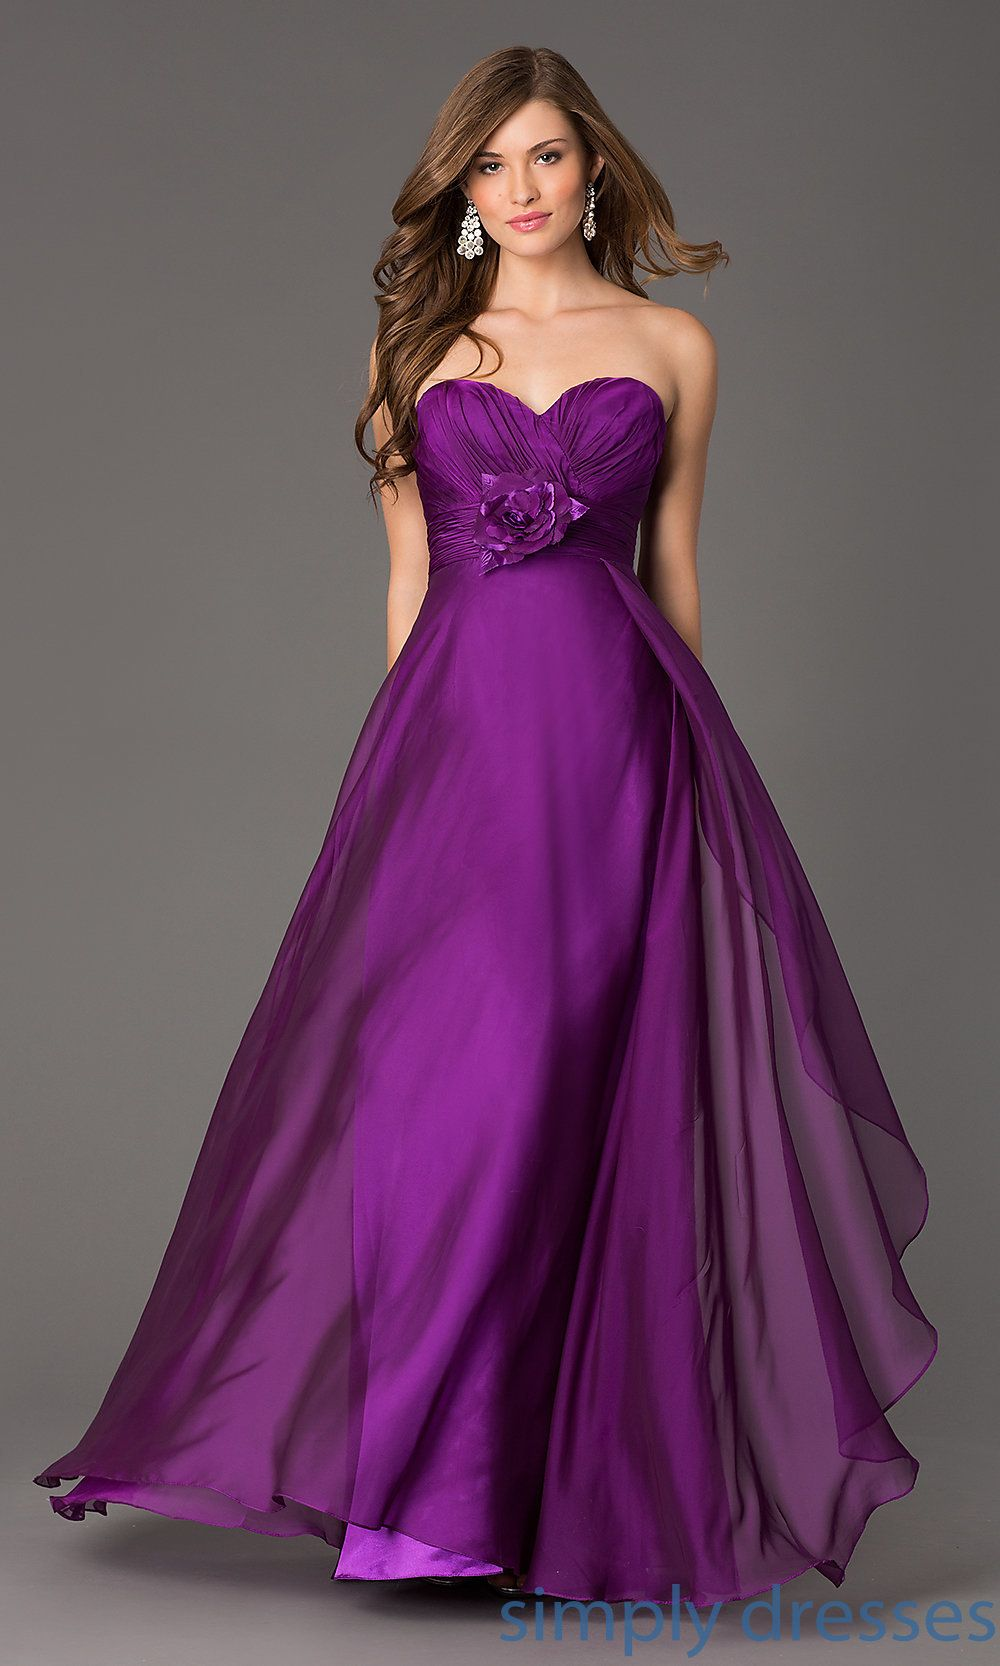 Dress, Long Strapless Chiffon Formal Gown by Alyce - Simply Dresses ...